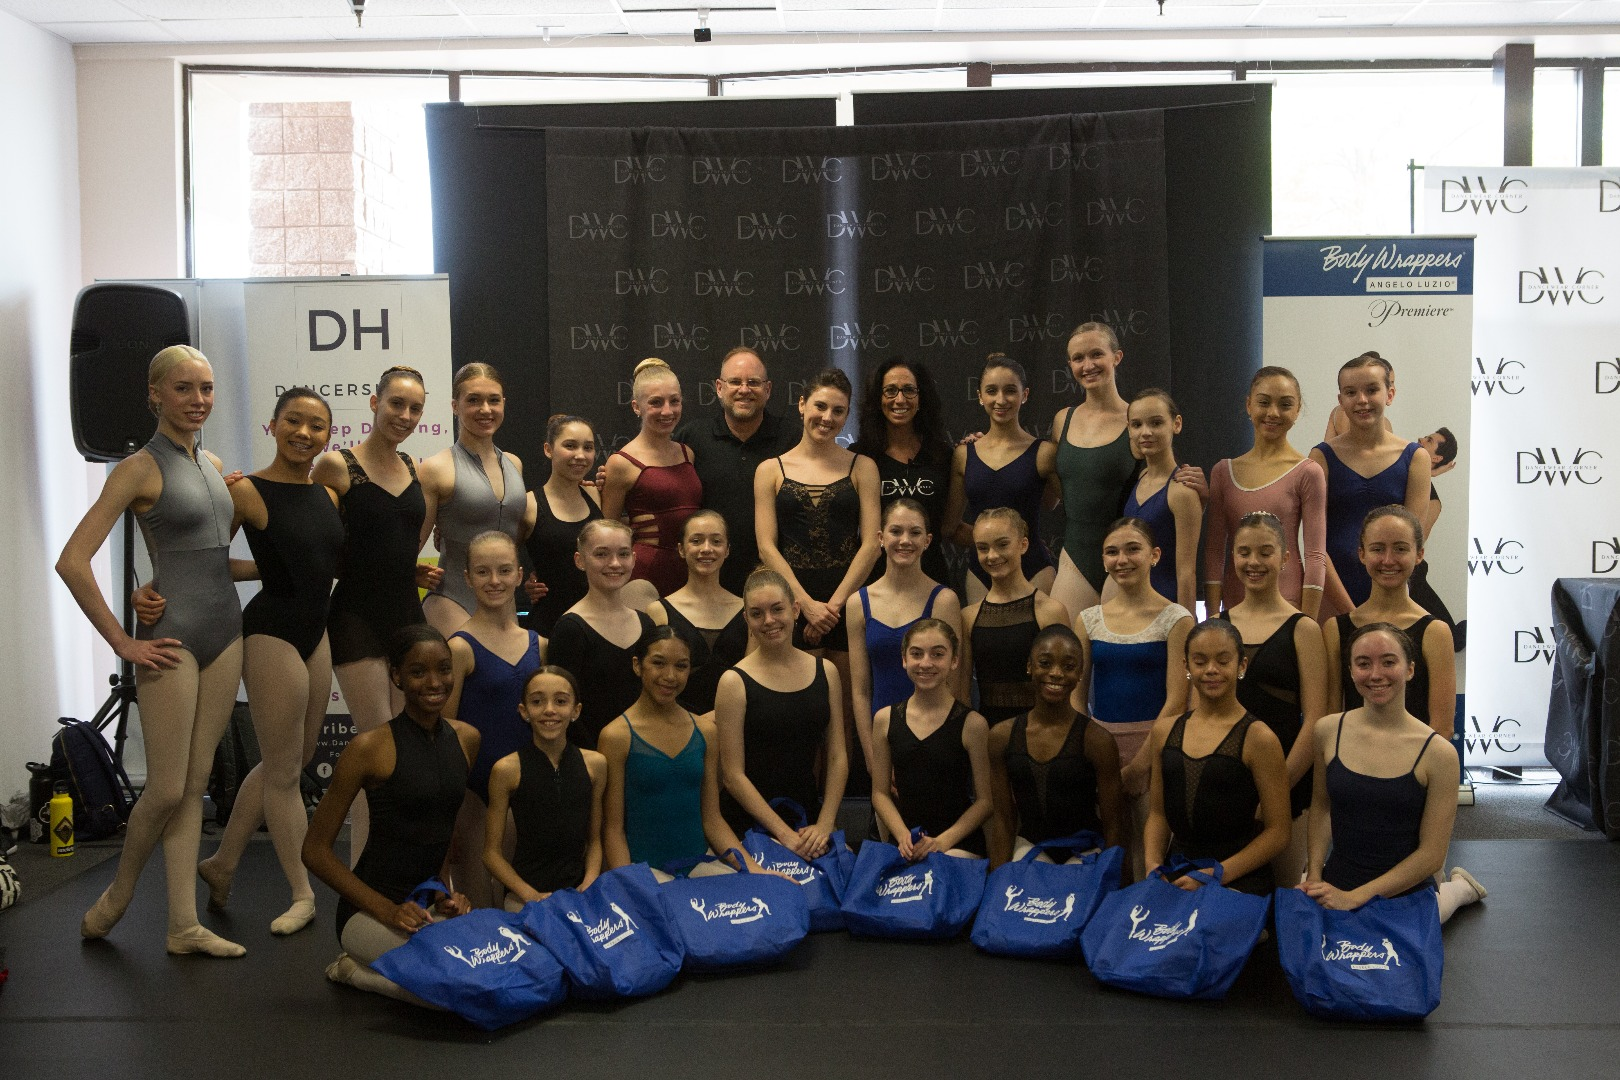 Tiler Peck and Bodywrappers at DWC